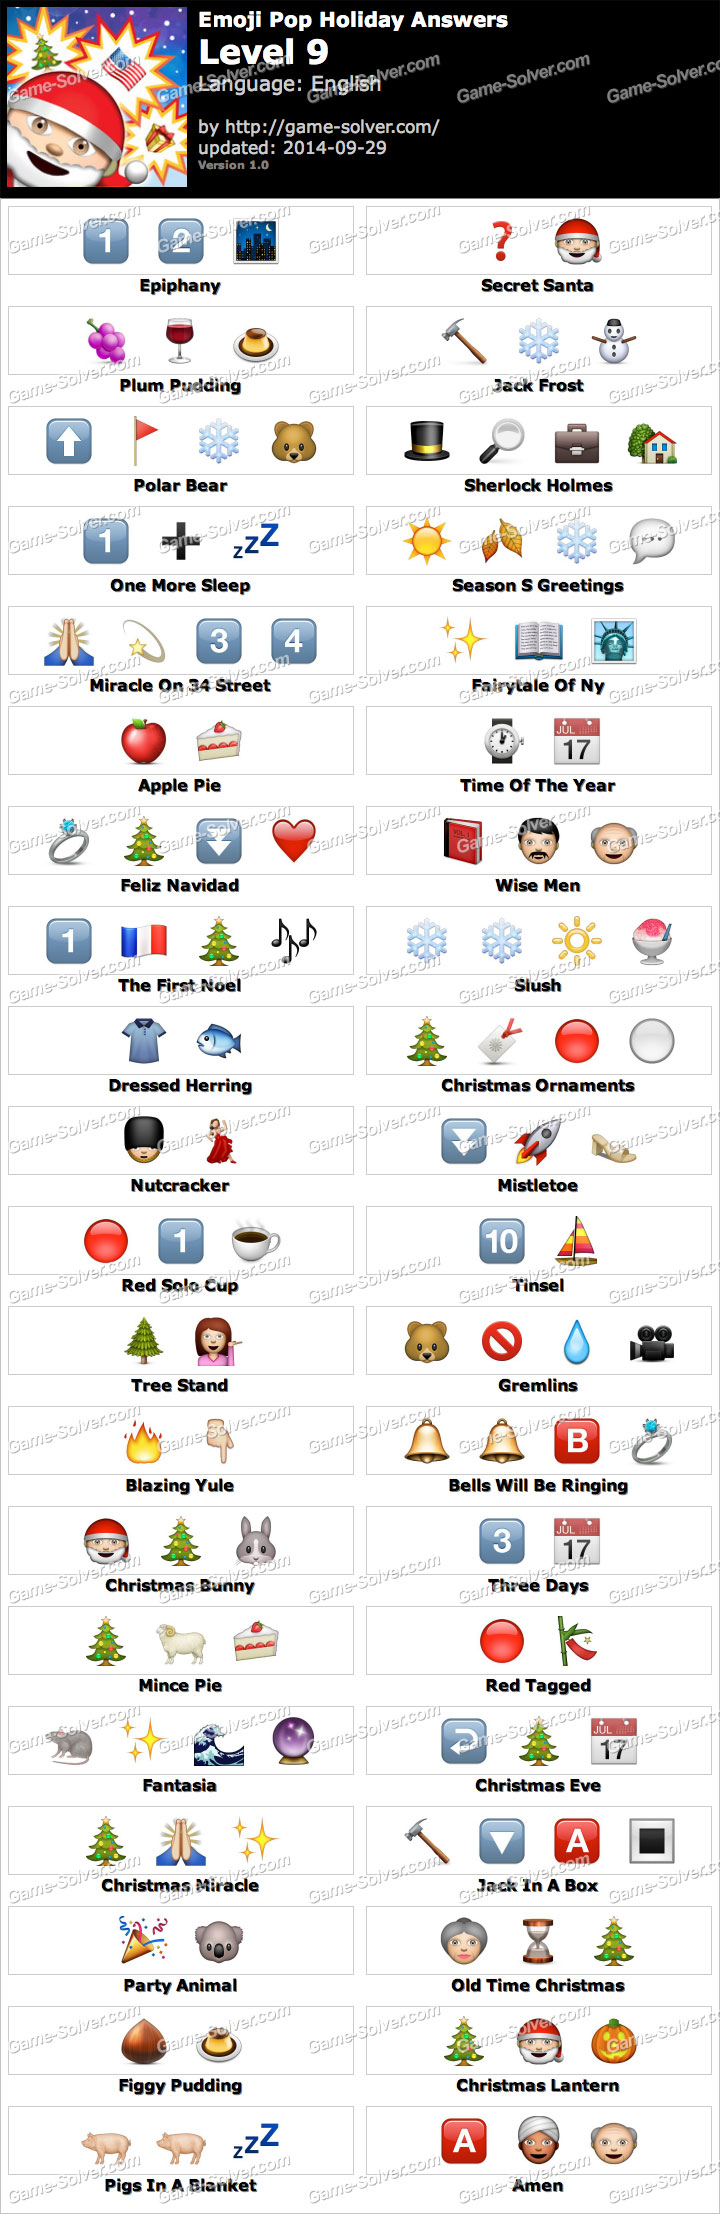 Emoji Pop Holiday Edition Level 9